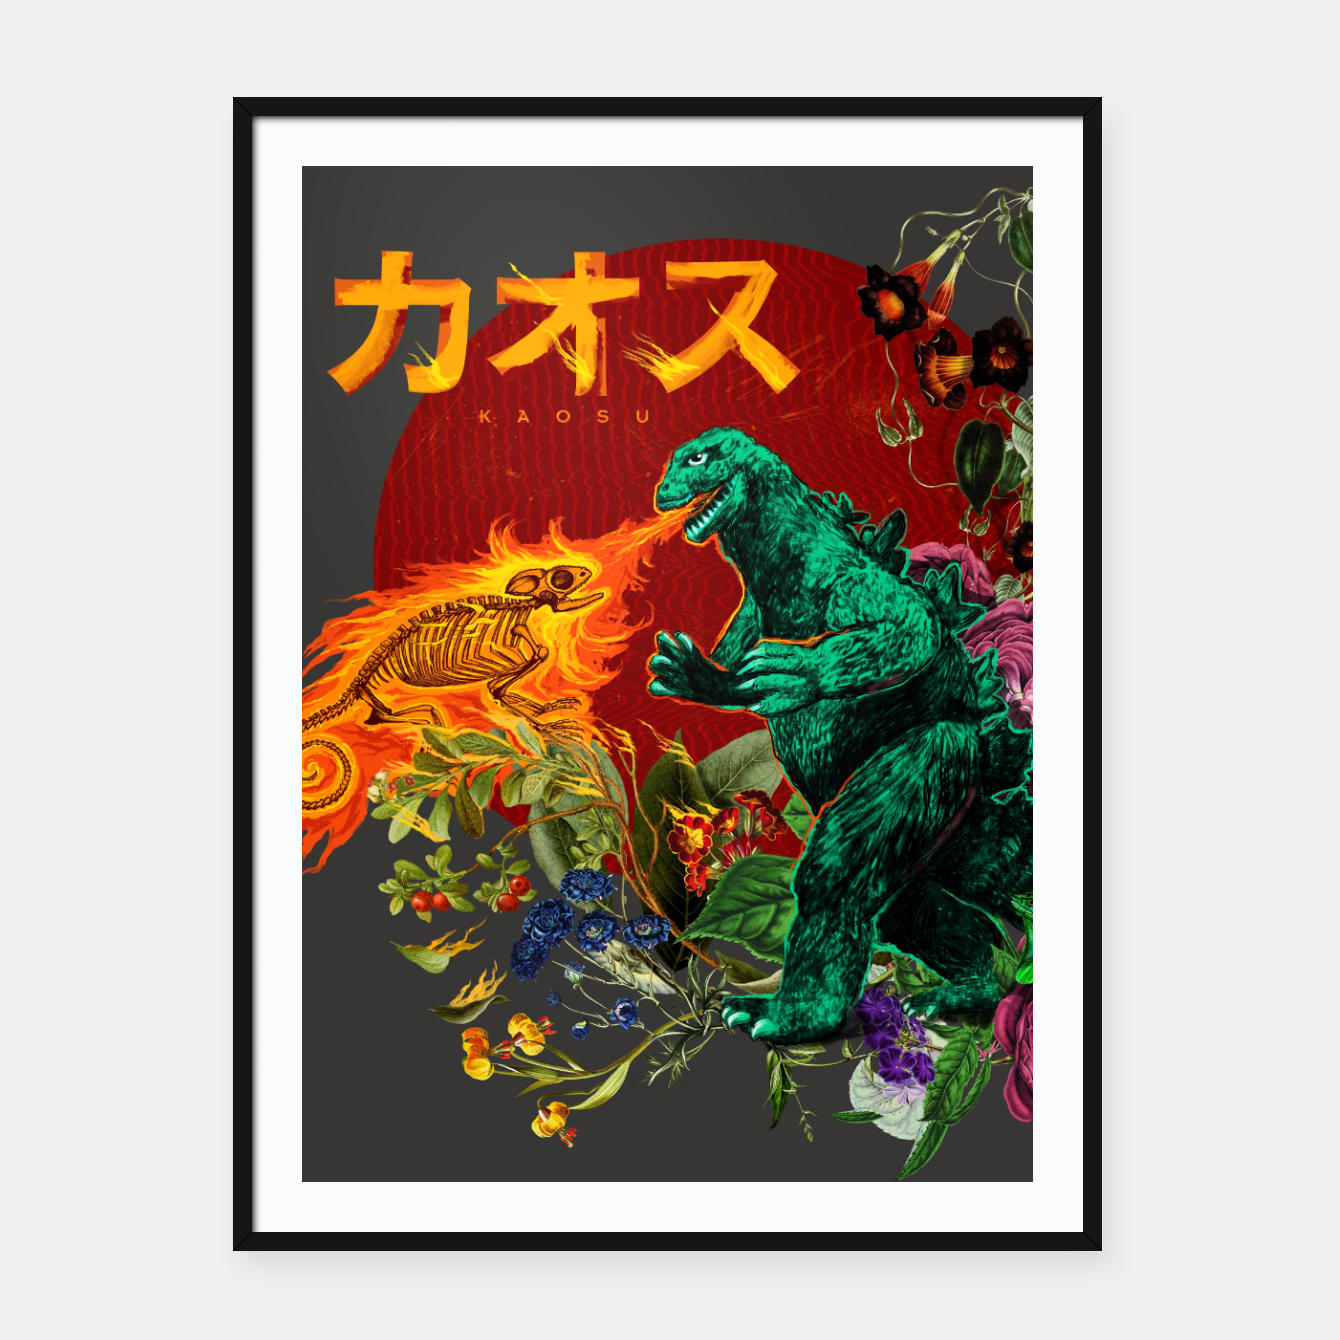 Foto Kaosu Framed poster - Live Heroes